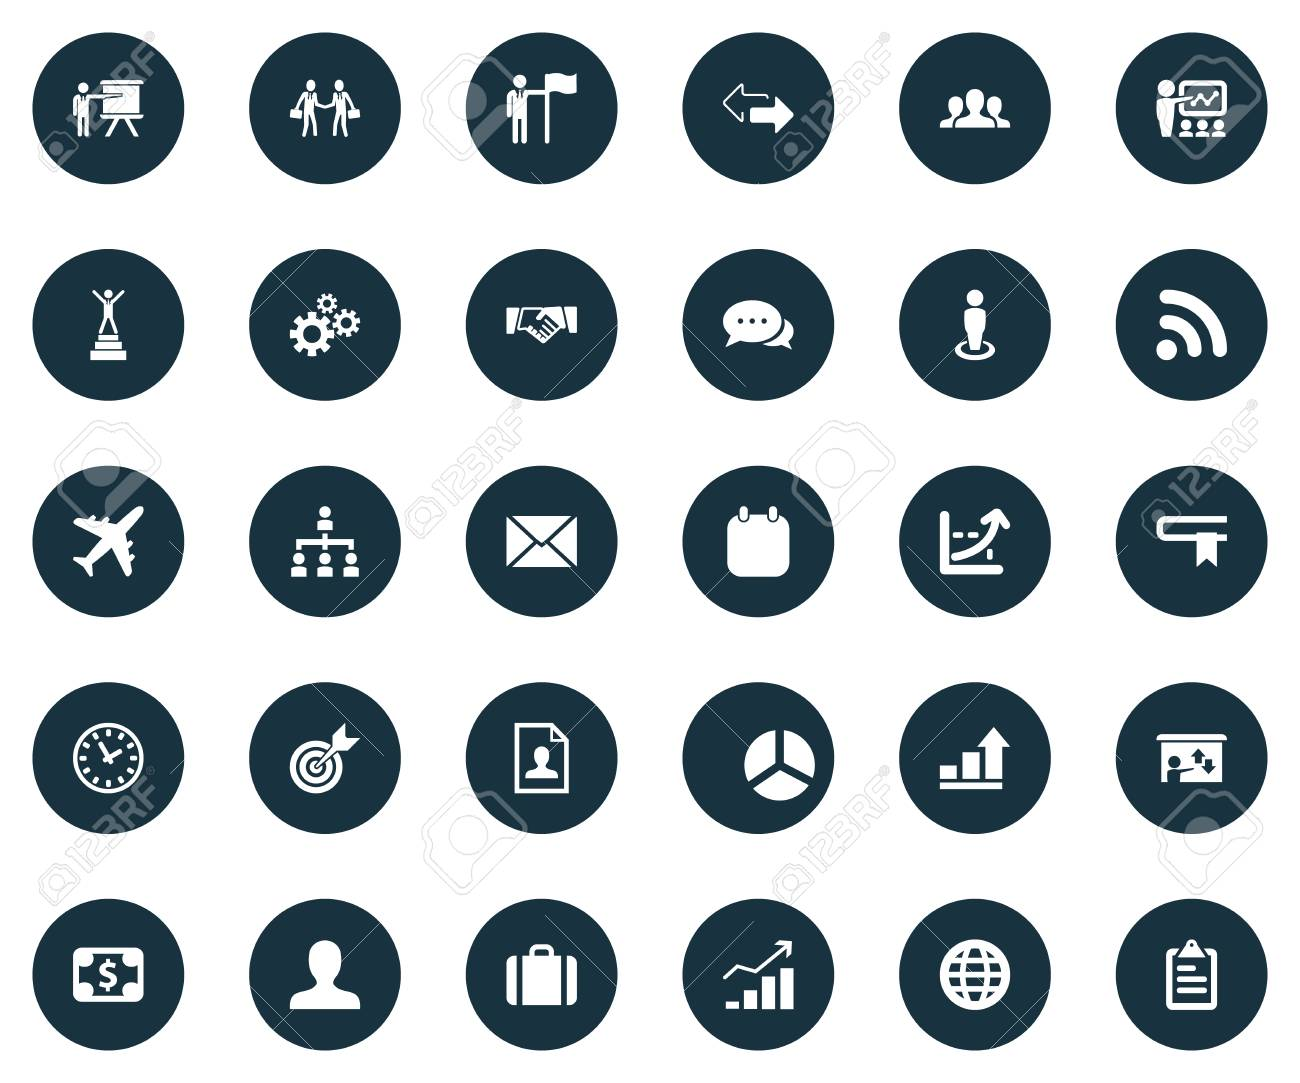 Icons For Resume.Vector Illustration Set Of Simple Business Icons Elements Resume